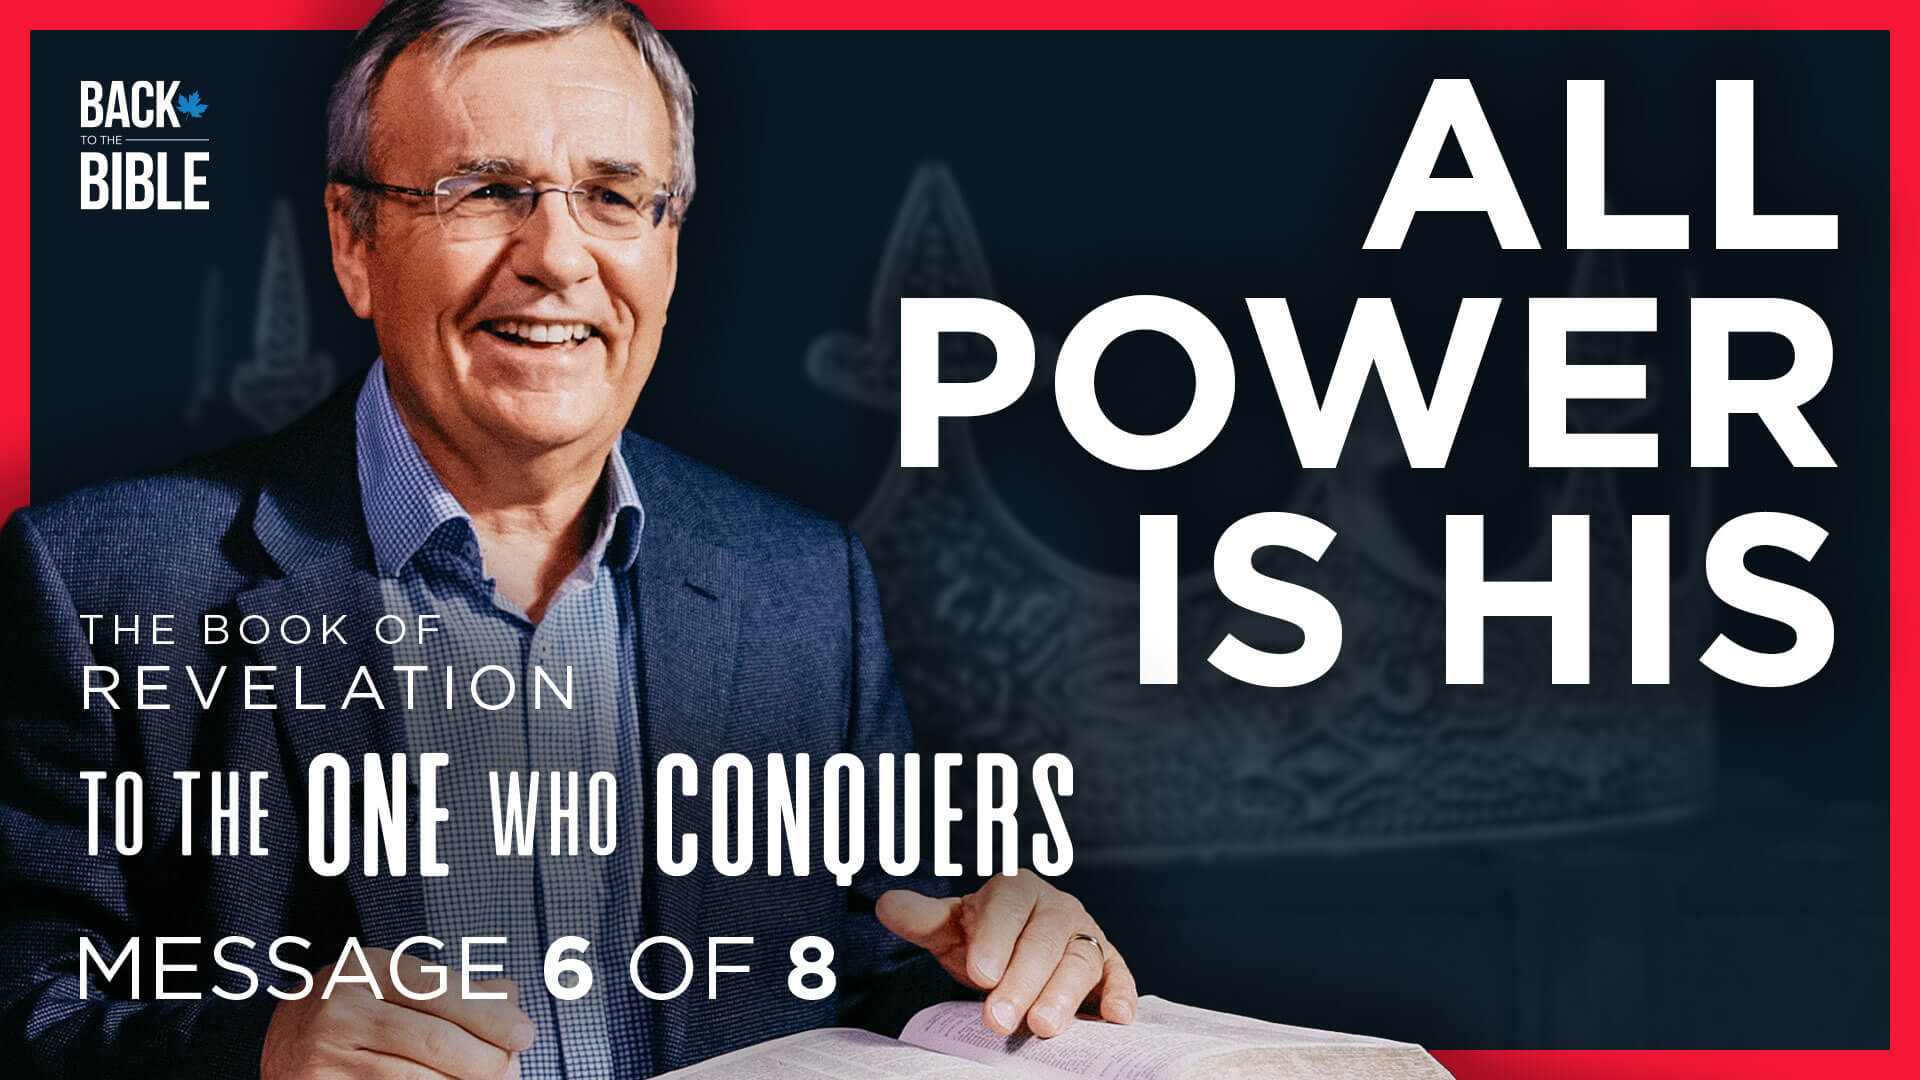 All Power is His - To the One Who Conquers - Dr. John Neufeld - Back to the Bible Canada